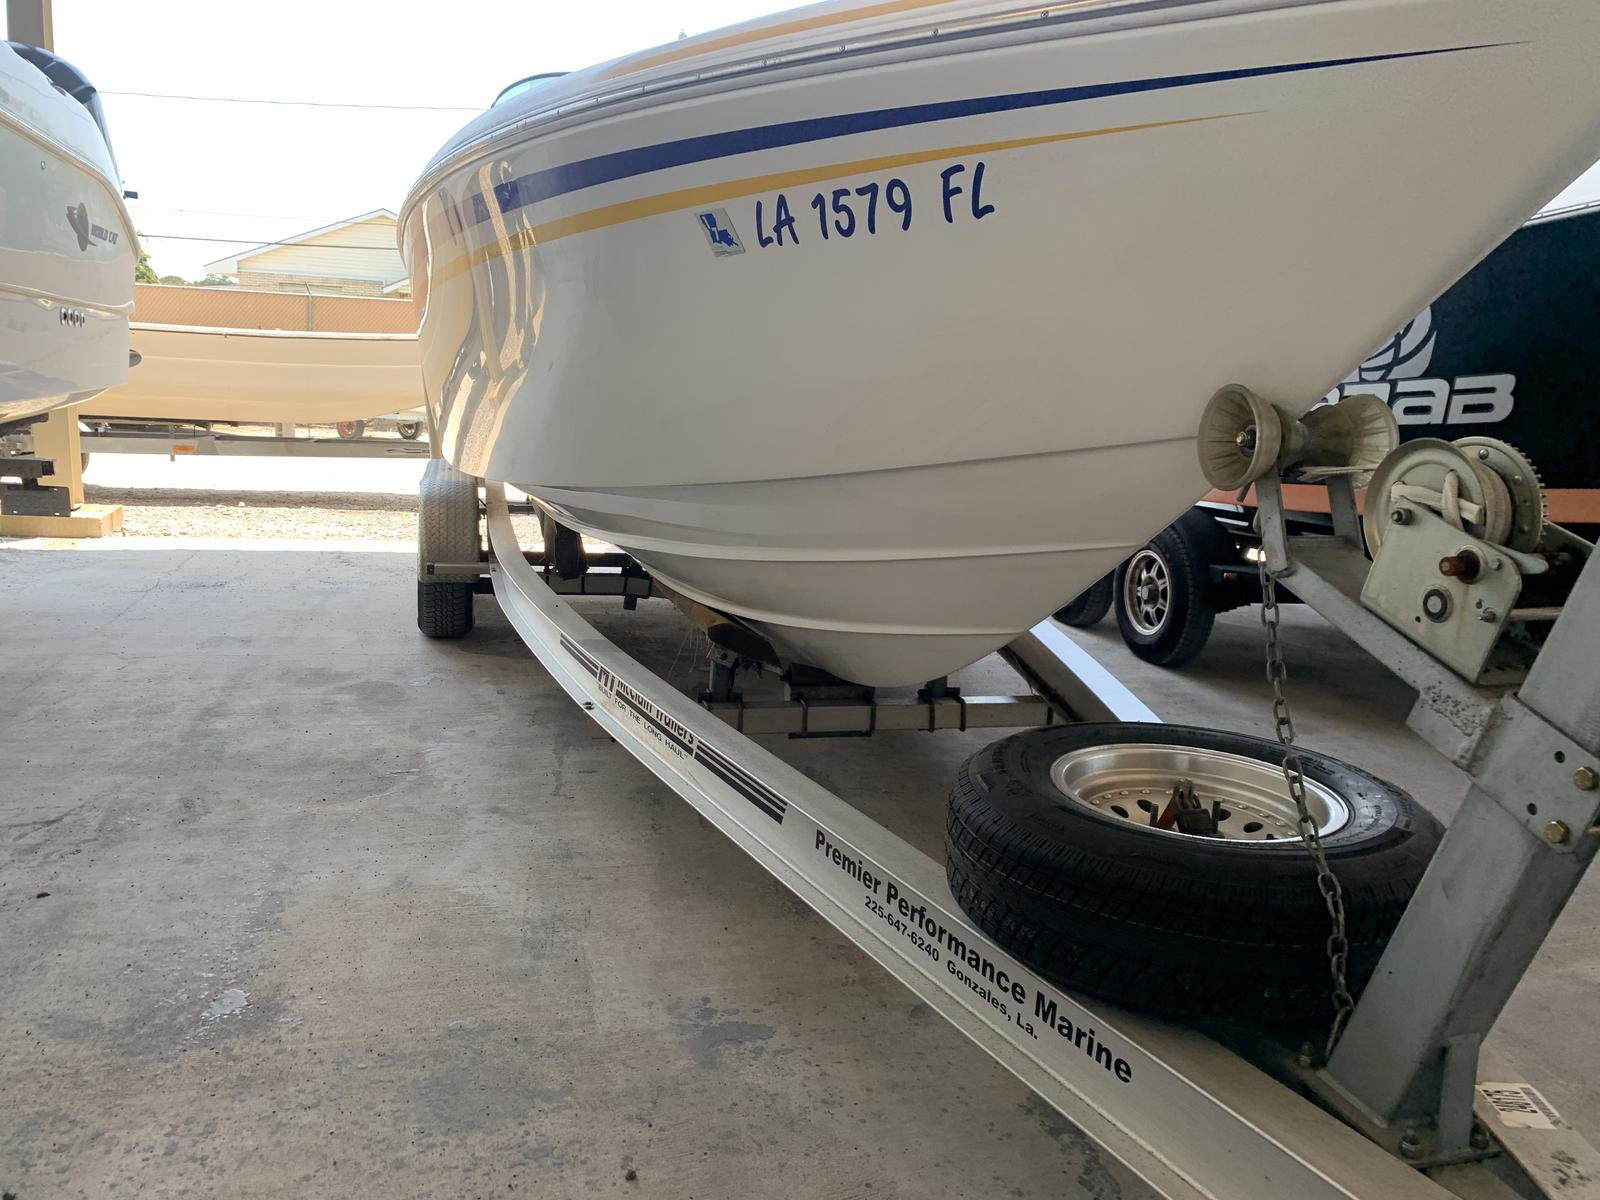 2005 Powerquest boat for sale, model of the boat is Legend 260 SX & Image # 7 of 9